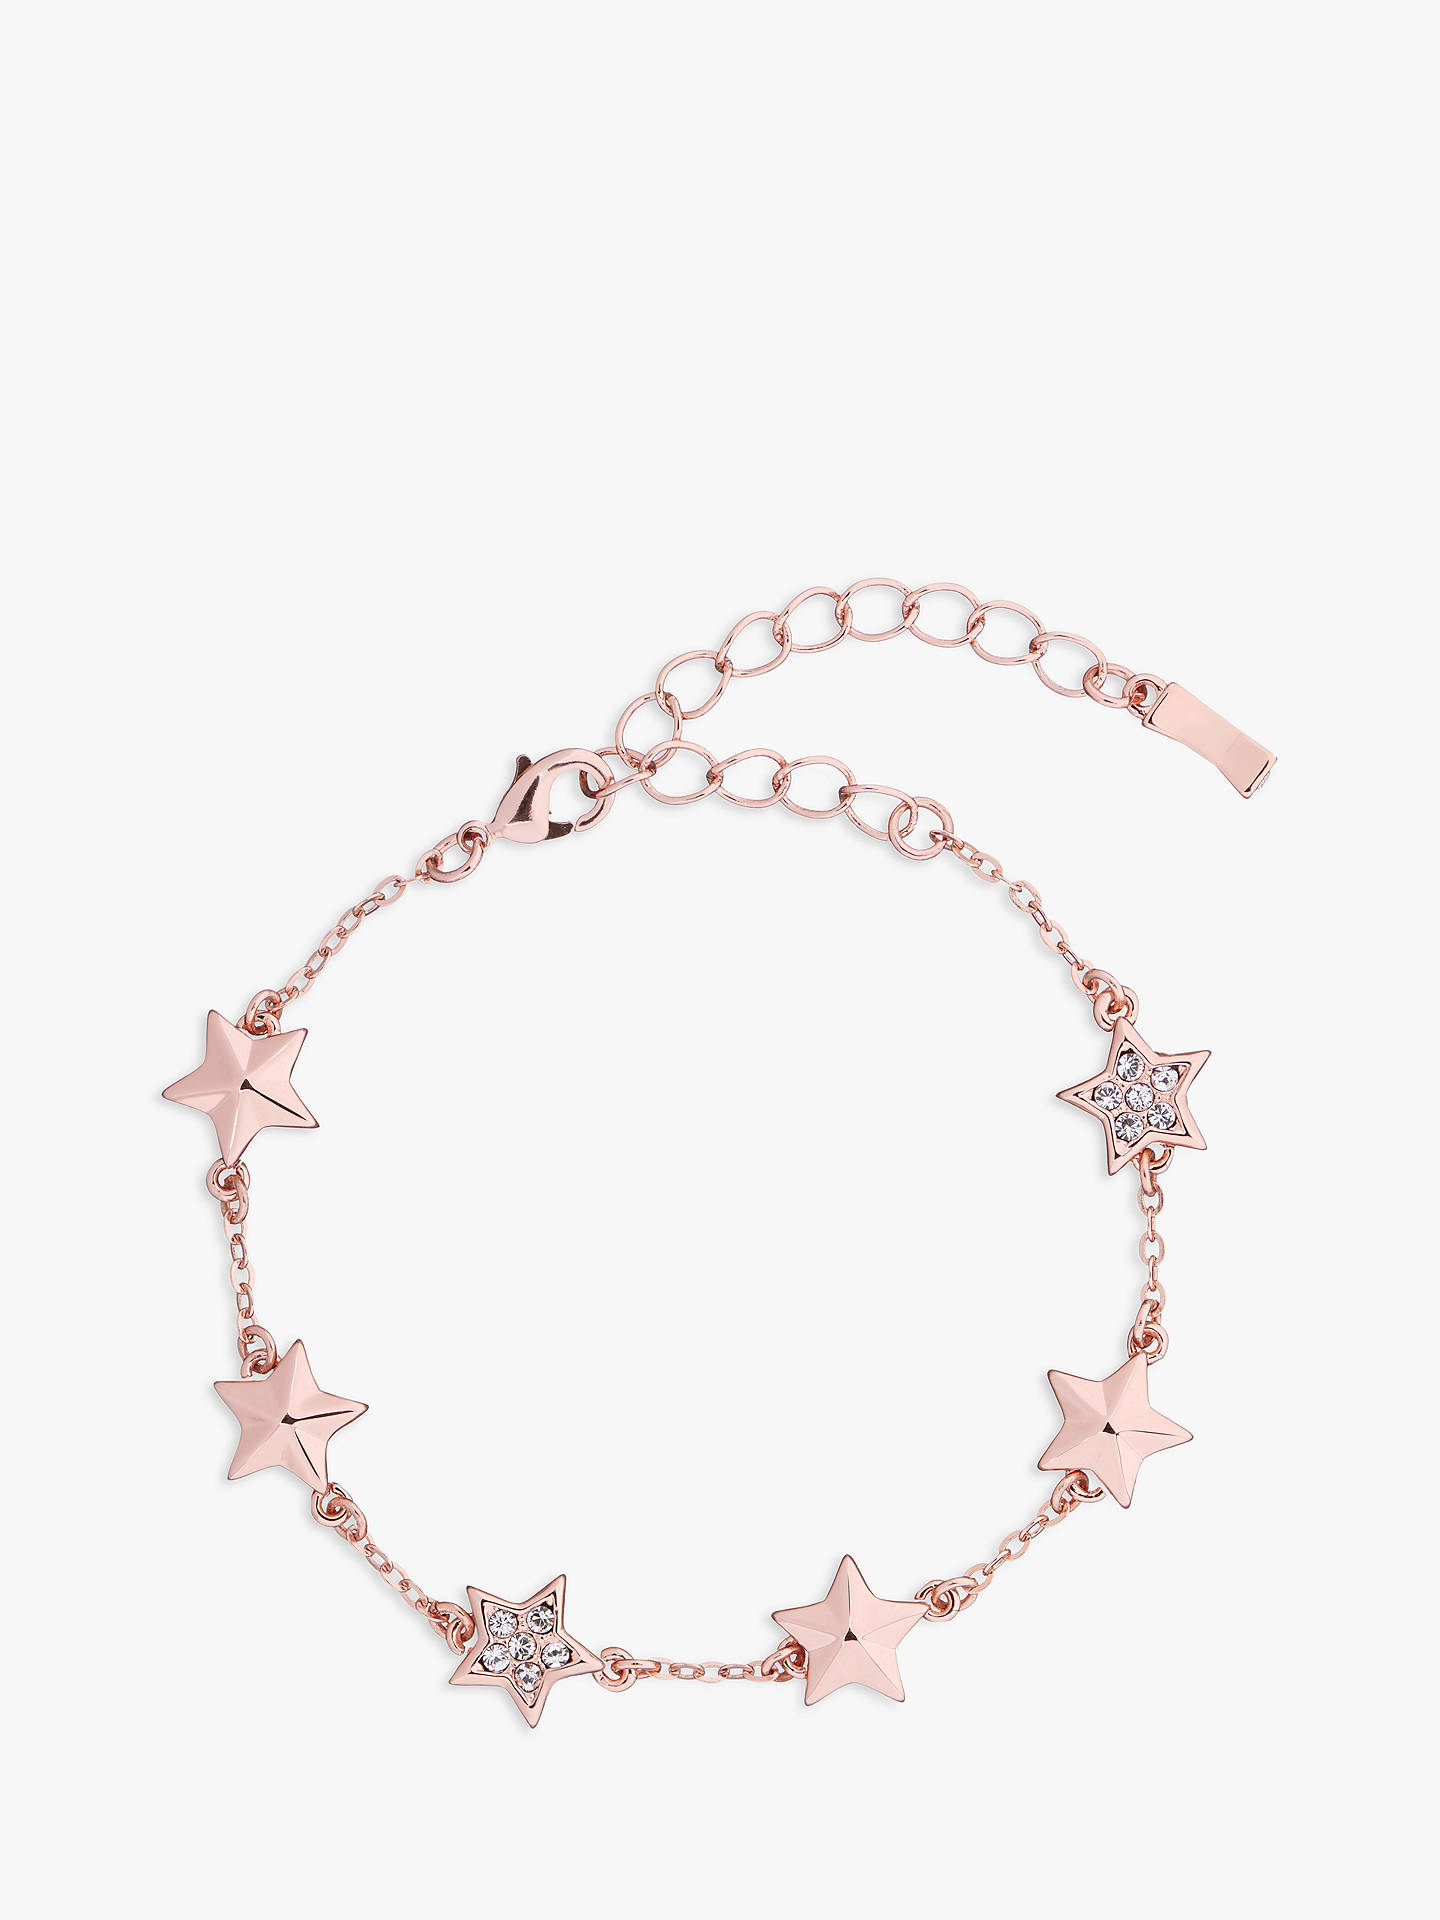 BuyTed Baker Shaena Swarovski Crystal Star Chain Bracelet, Rose Gold Online at johnlewis.com